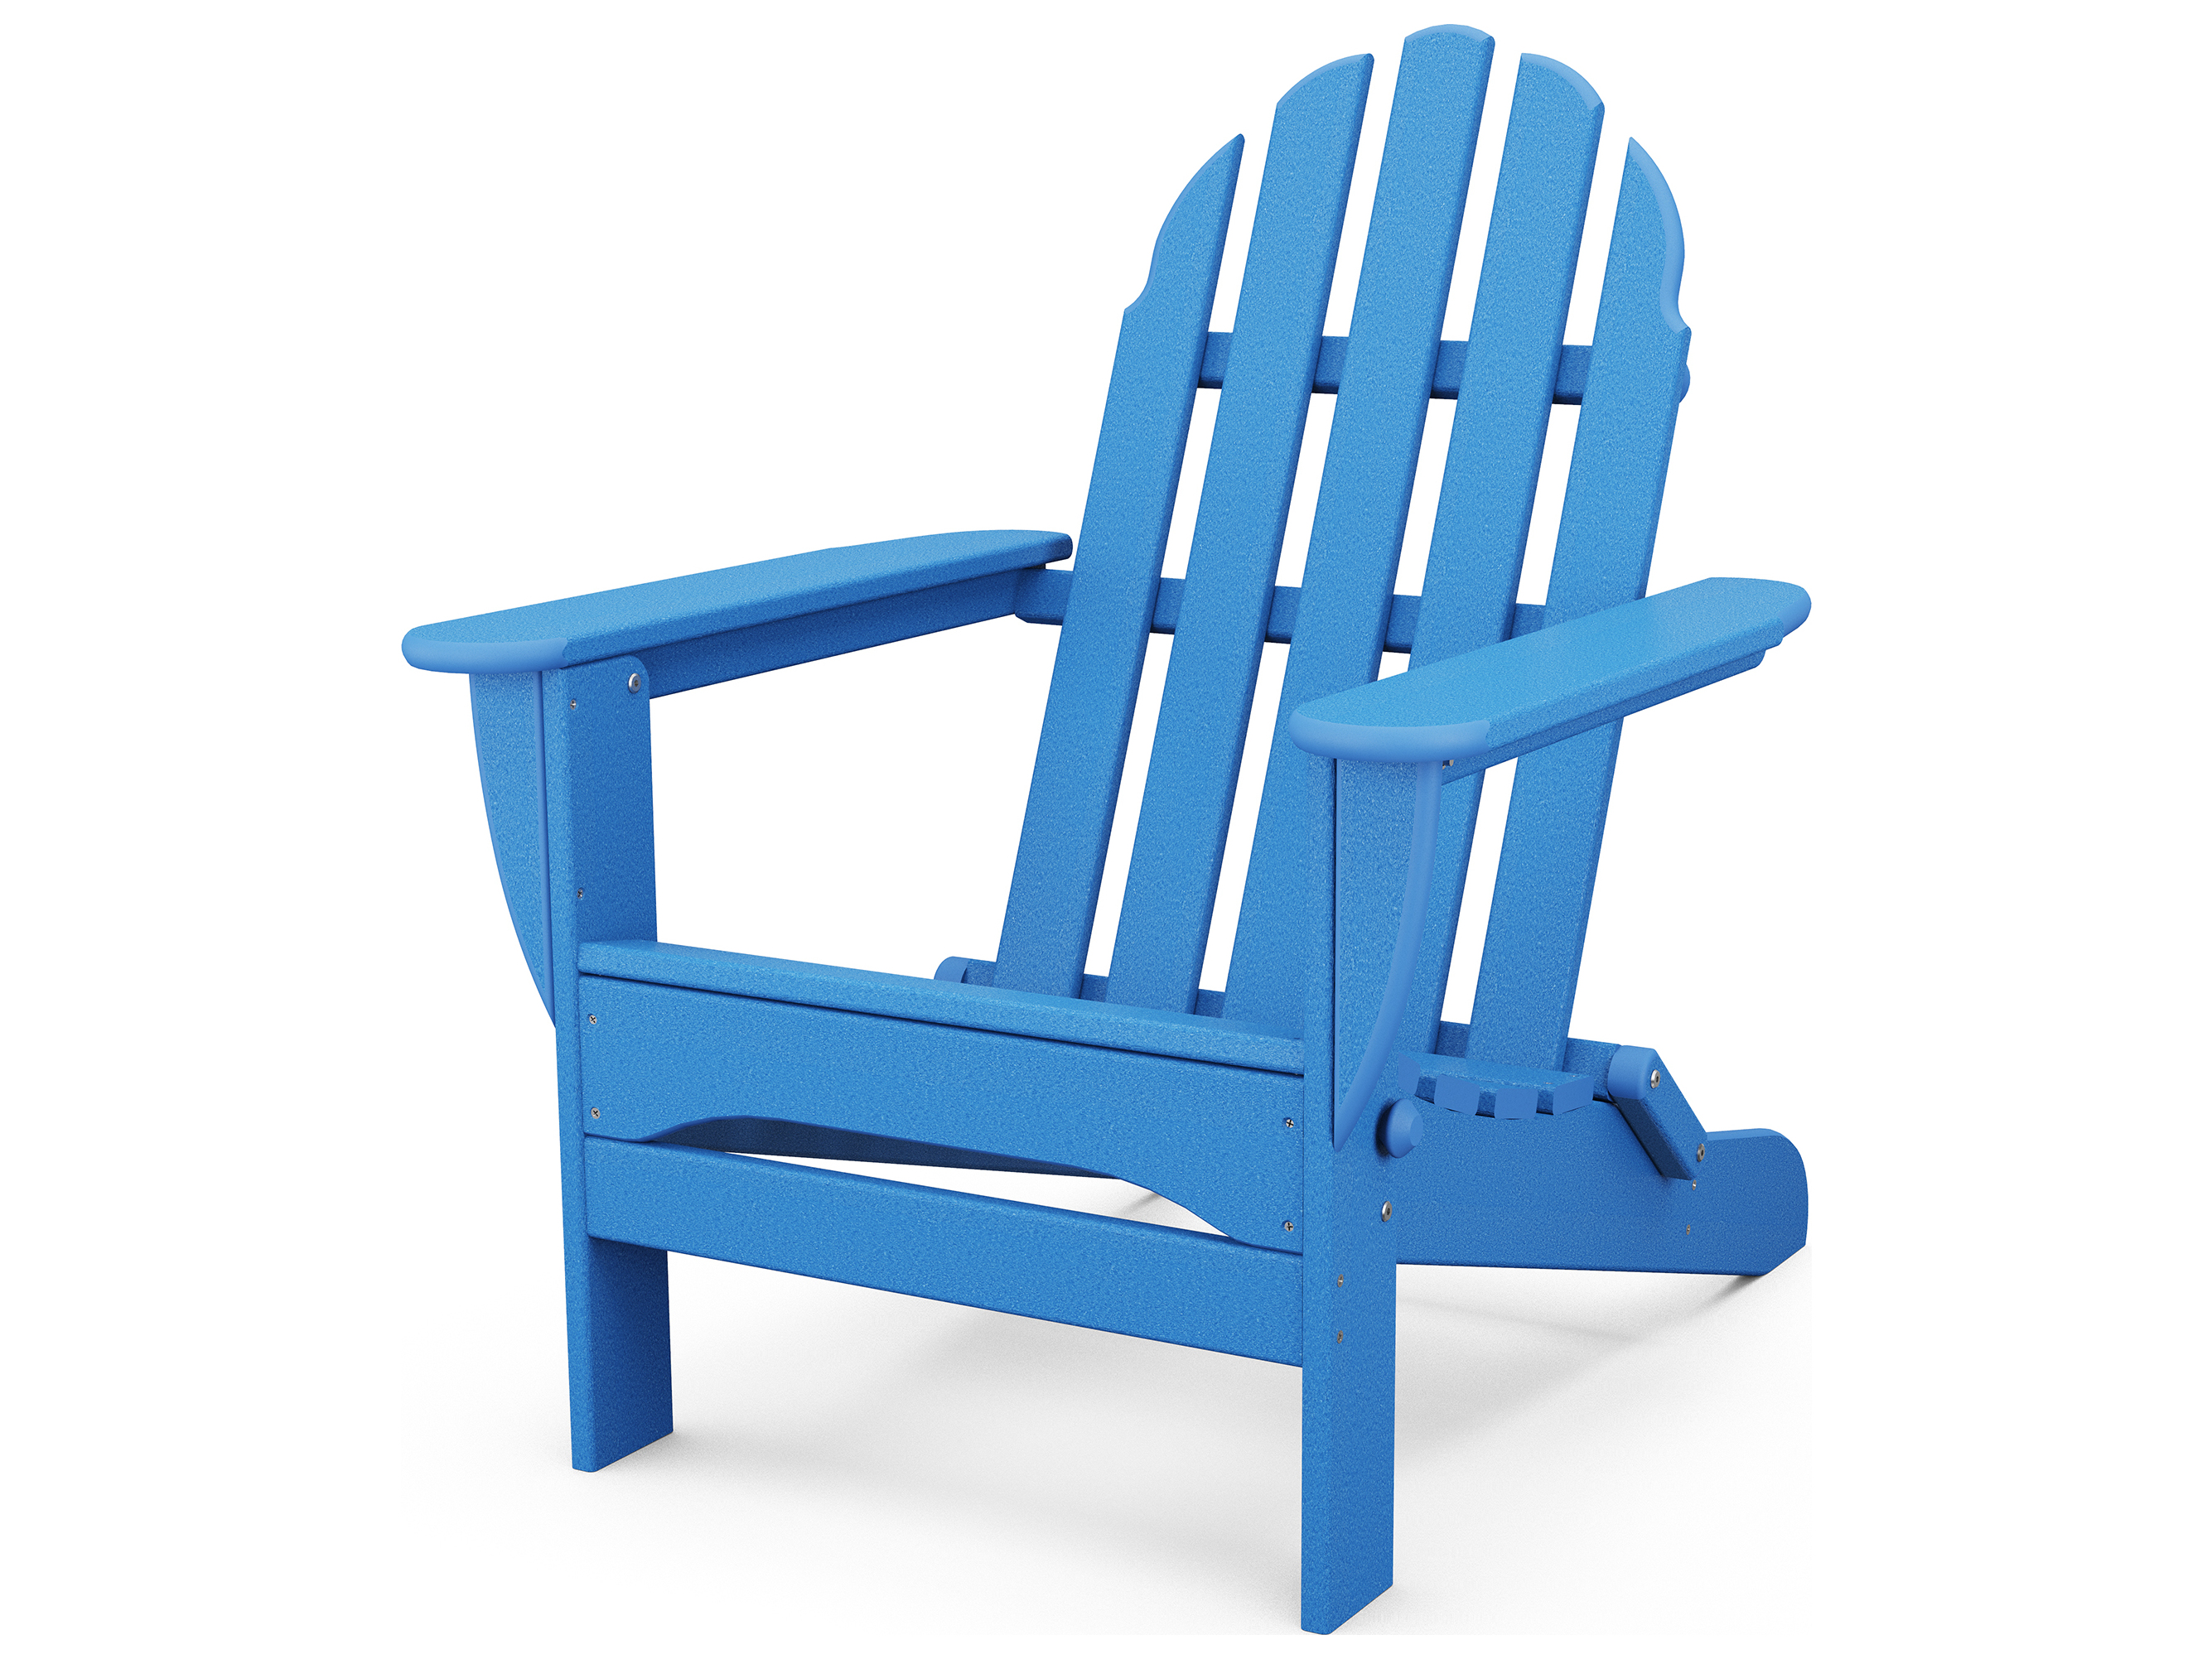 polywood classic adirondack chair red salon chairs recycled plastic ad5030